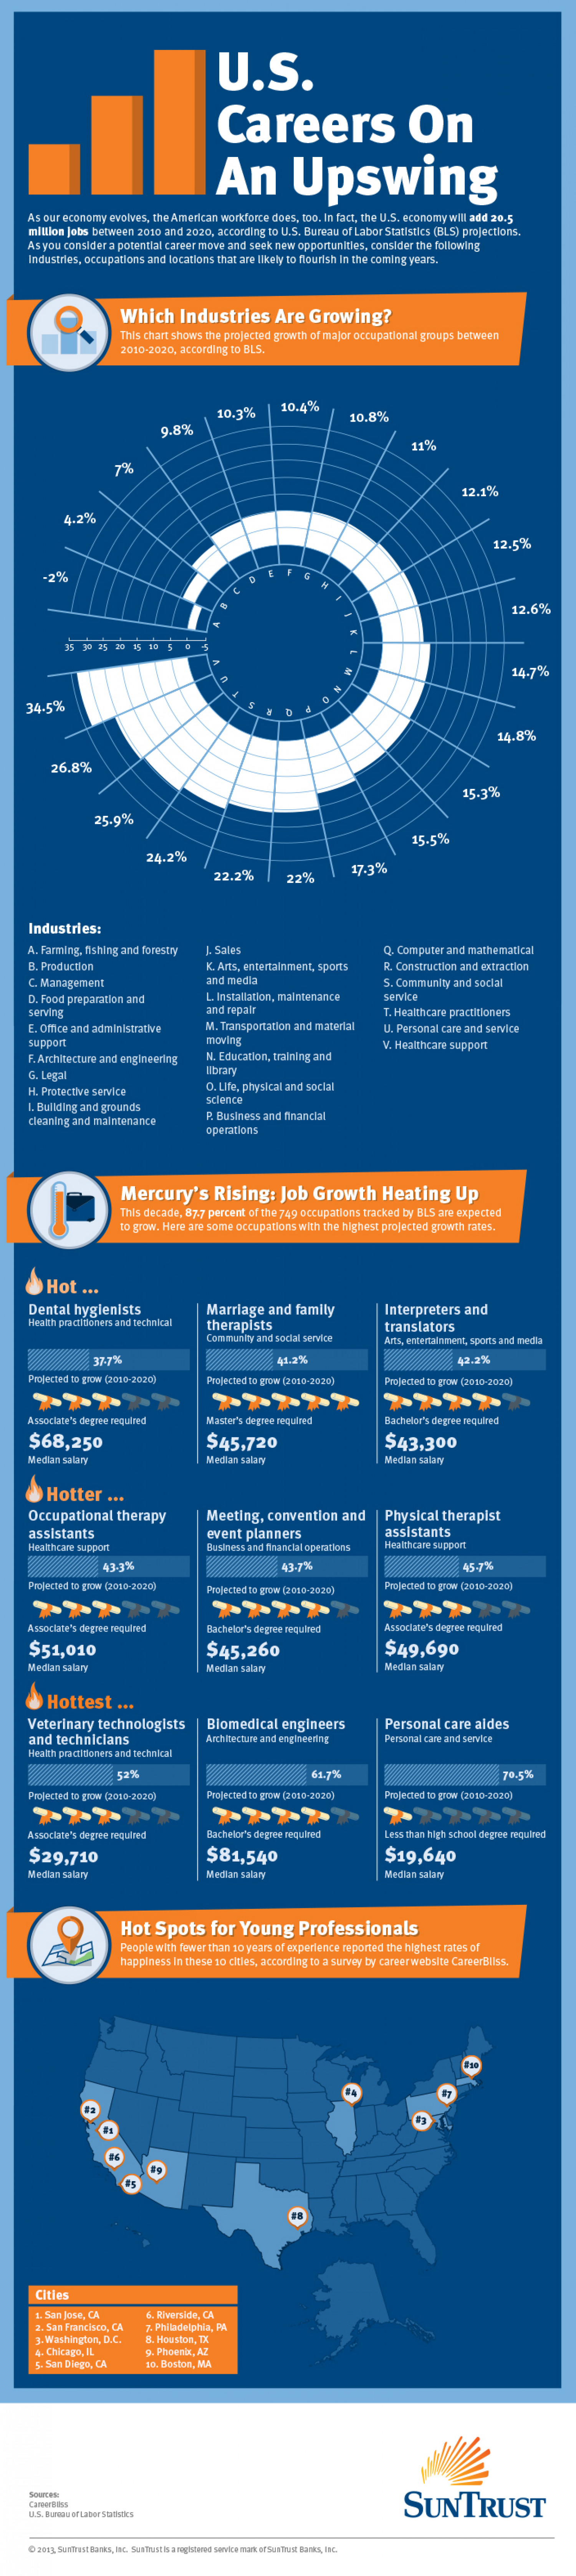 U.S Careers on an Upswing Infographic